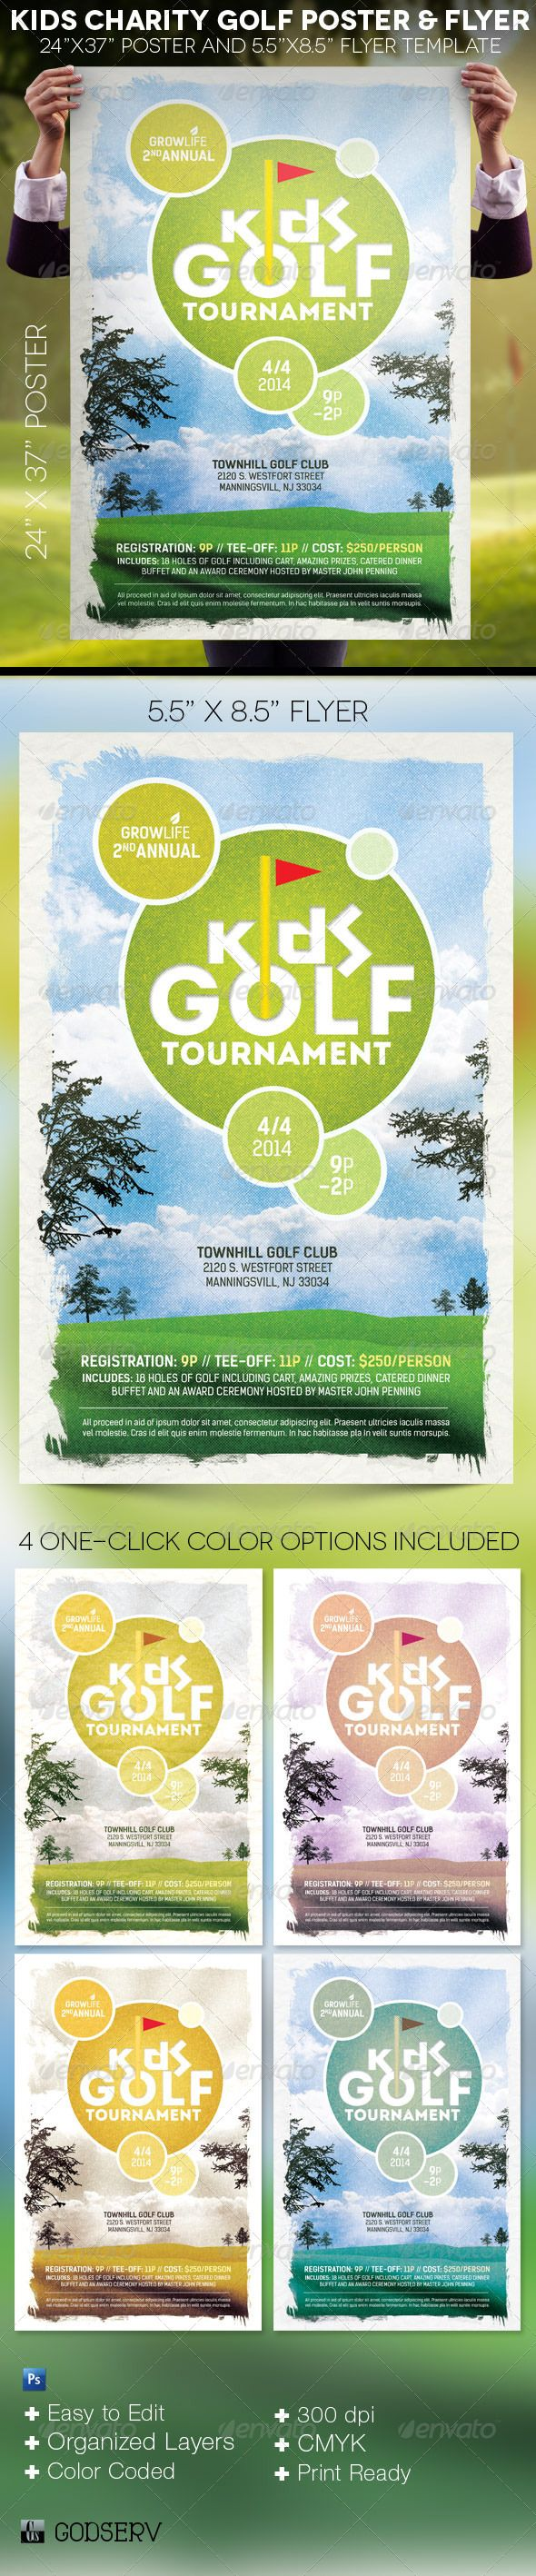 Kids Charity Golf Poster Flyer Template - PSD Template • Only available here ➝ http://graphicriver.net/item/kids-charity-golf-poster-flyer-template/4552264?ref=pxcr